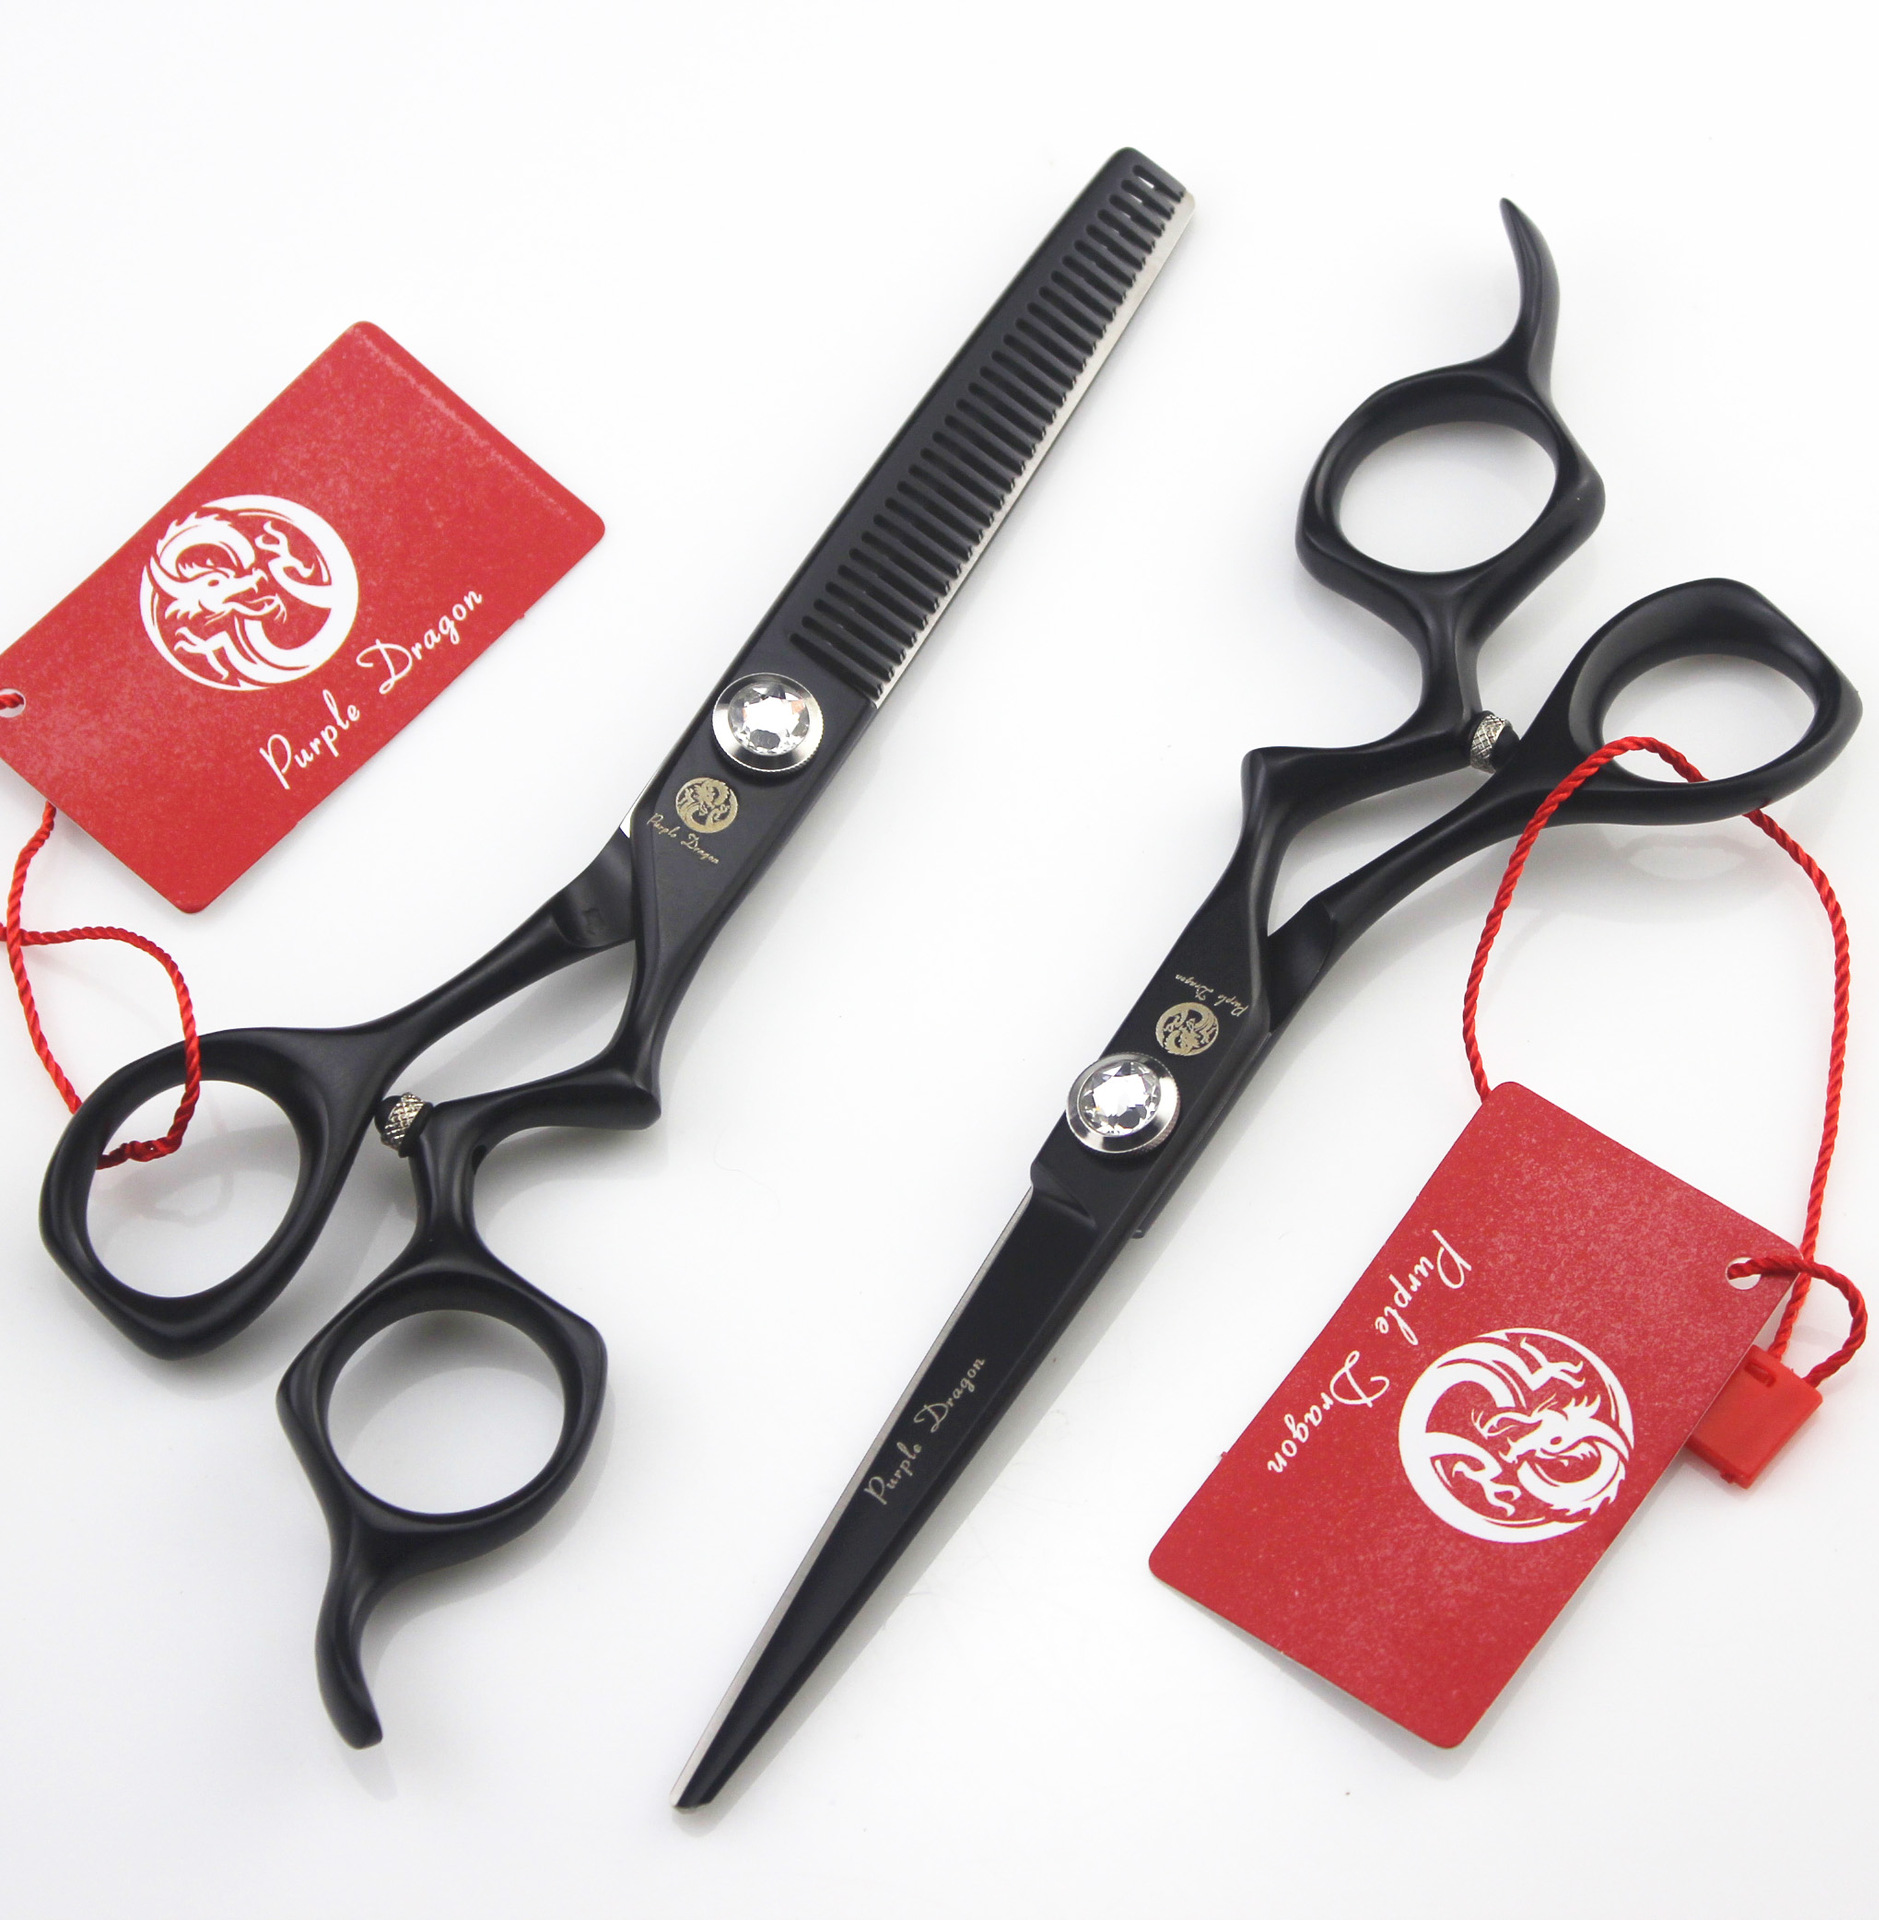 6 inch black paint Professional Hair Scissors Salon Haircuts Hairdressing Cutting Barber Tools